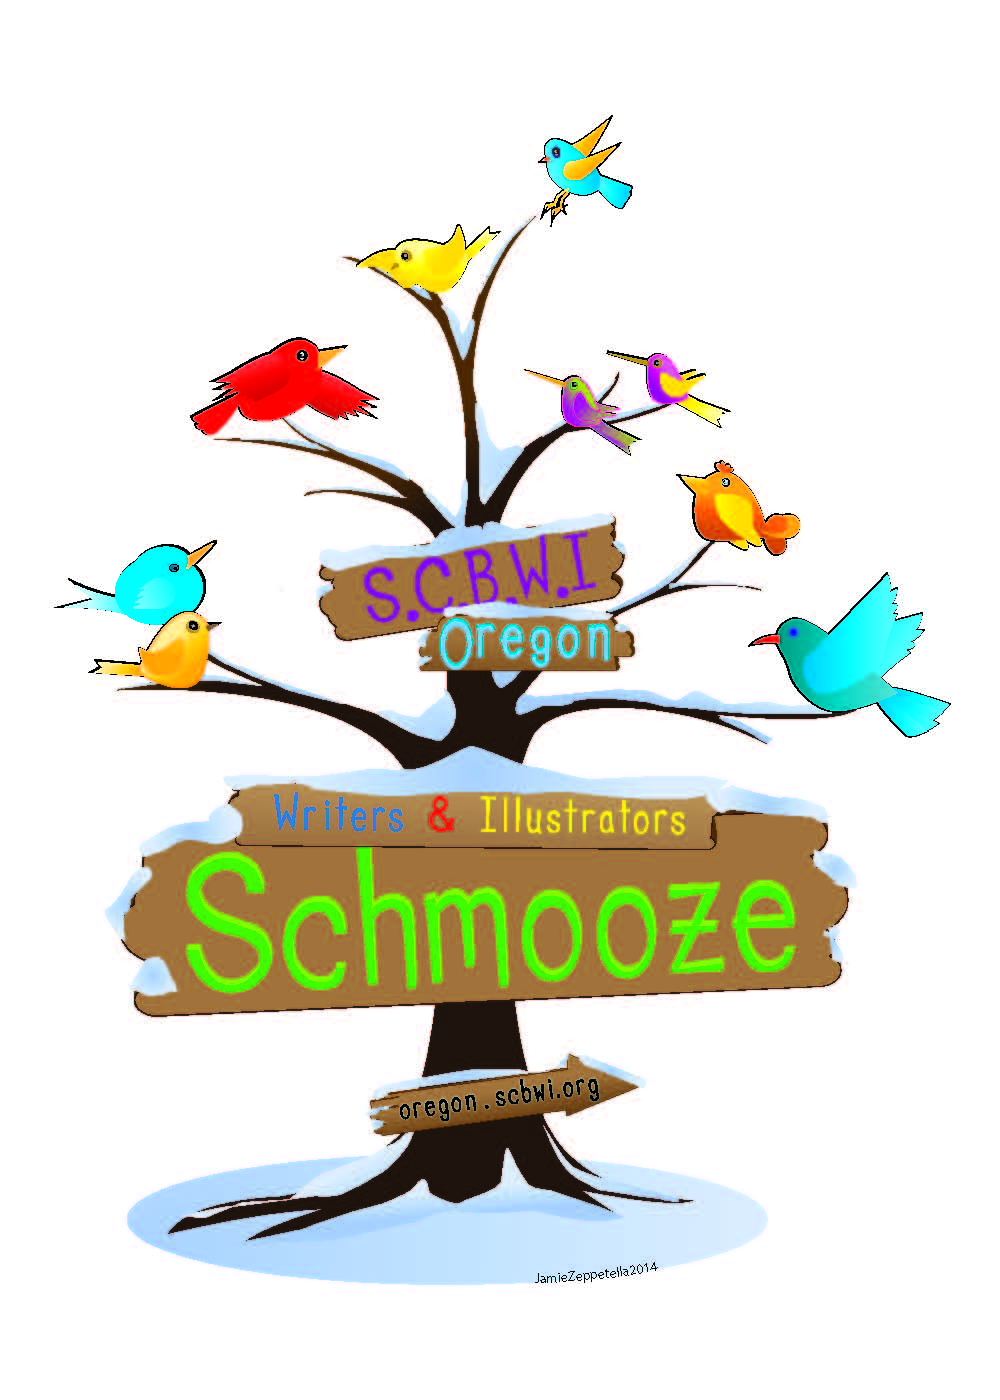 "What is a Schmooze? A schmooze is an informal gathering where members meet to socialize and talk about children's writing.  It is a support/fellowship/networking meeting. Often there are no guest speakers at a schmooze. Nor is any critiquing done. For purposes of comfort and safety, schmoozes are usually held in public venues (libraries, churches, parks, restaurants, bookstores, etc.). A topic for discussion may be chosen ahead of time to ""get the ball rolling,"" but the object is to encourage everyone to participate. Input from attendees with experience related to the topic is always welcome. Or participants may attend an event together (i.e. a booksigning, author appearance, etc.). Attendees Open to SCBWI members and nonmembers. Attendees are discouraged from bringing young children to SCBWI events. Caregivers or facilitators for physically impaired attendees are always welcome. Regular Schmoozes currently on the Calendar - check calendar for specific dates and times or click here to go to the events page. Clark County, Vancouver, WA – monthly SE Portland – bimonthly League of Exceptional Writers Schmooze – monthly (Oct-May) PLAN A SCHMOOZE Here's how: 1. Get approval from Carol Bloemen, Schmooze Coordinator, at bloemen.carol@gmail.com. 2. Choose a free location (a library, a community center, a cafe) and a date and time—one to two hours is a good length. Note: schmoozes are free to members and nonmembers alike, so a good way to introduce people to SCBWI. 3. Send a written announcement to Carol Bloemen for publicity purposes. Include a contact email and/or phone number. She'll send it to the appropriate people for the website, unless you prefer not, and if there's enough lead time, for the next NewsWorthy (deadlines are Jan 30, Mar 30, May 30, Jul 30, Sep 30 & Nov 30). 4. Share about the Schmooze on Toad Hall or other listserves where you can invite writers and illustrators. 5. If your Schmooze is location based, Carol can send an email announcing the Schmooze to people in that area. 6. Report back to Carol on results and she'll share in the newsletter.  Questions? Contact Carol Bloemen at bloemen.carol@gmail.com"